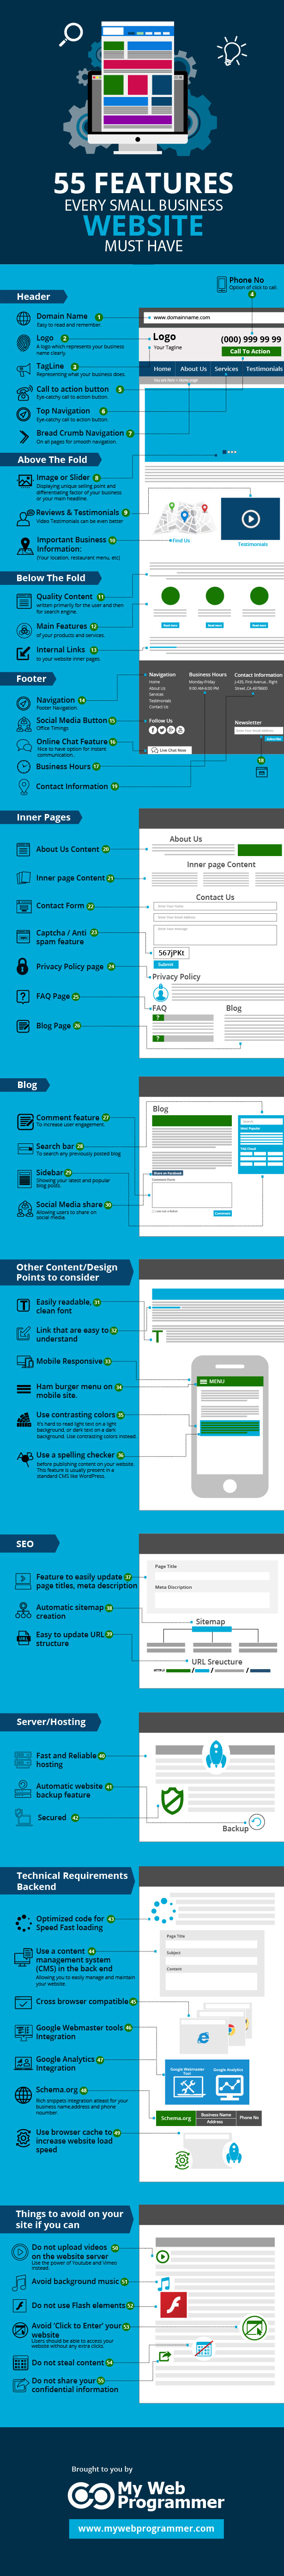 small business website features infographic